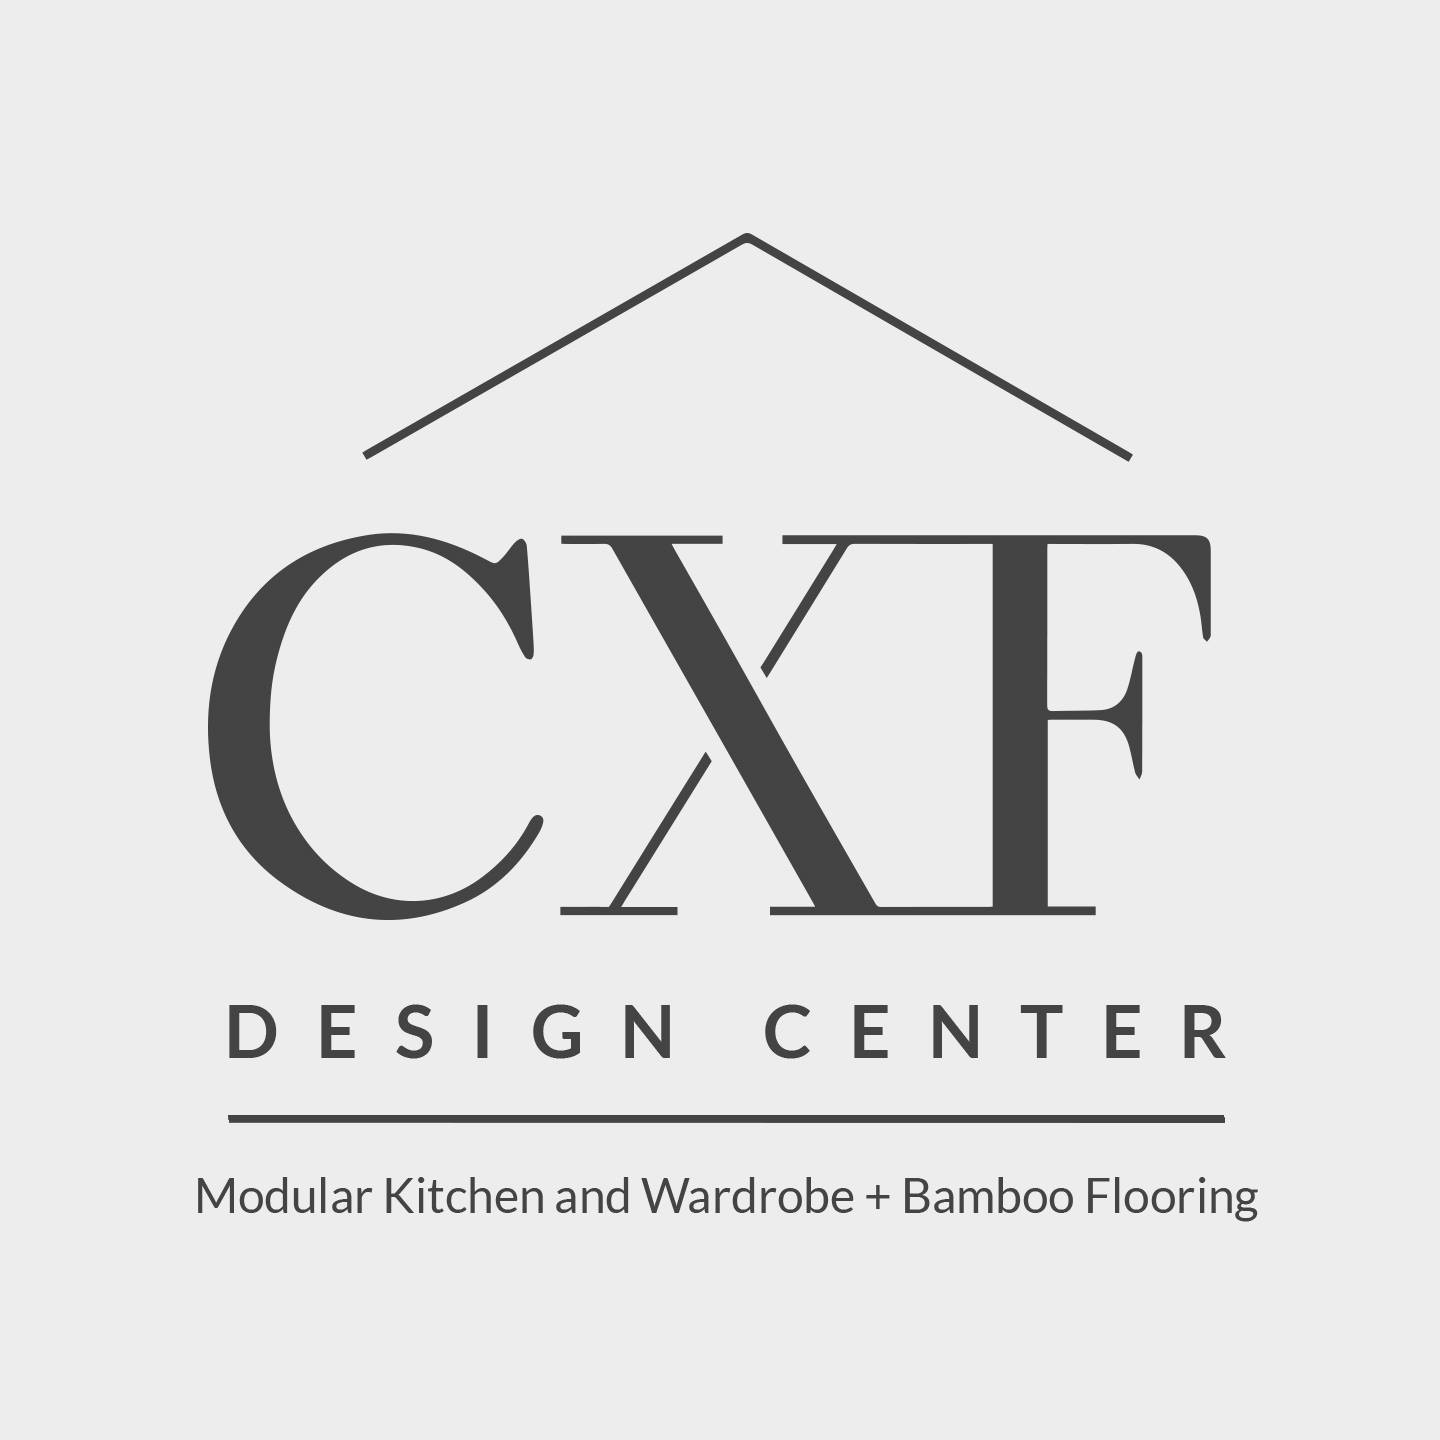 Cxf Design Center Corporation